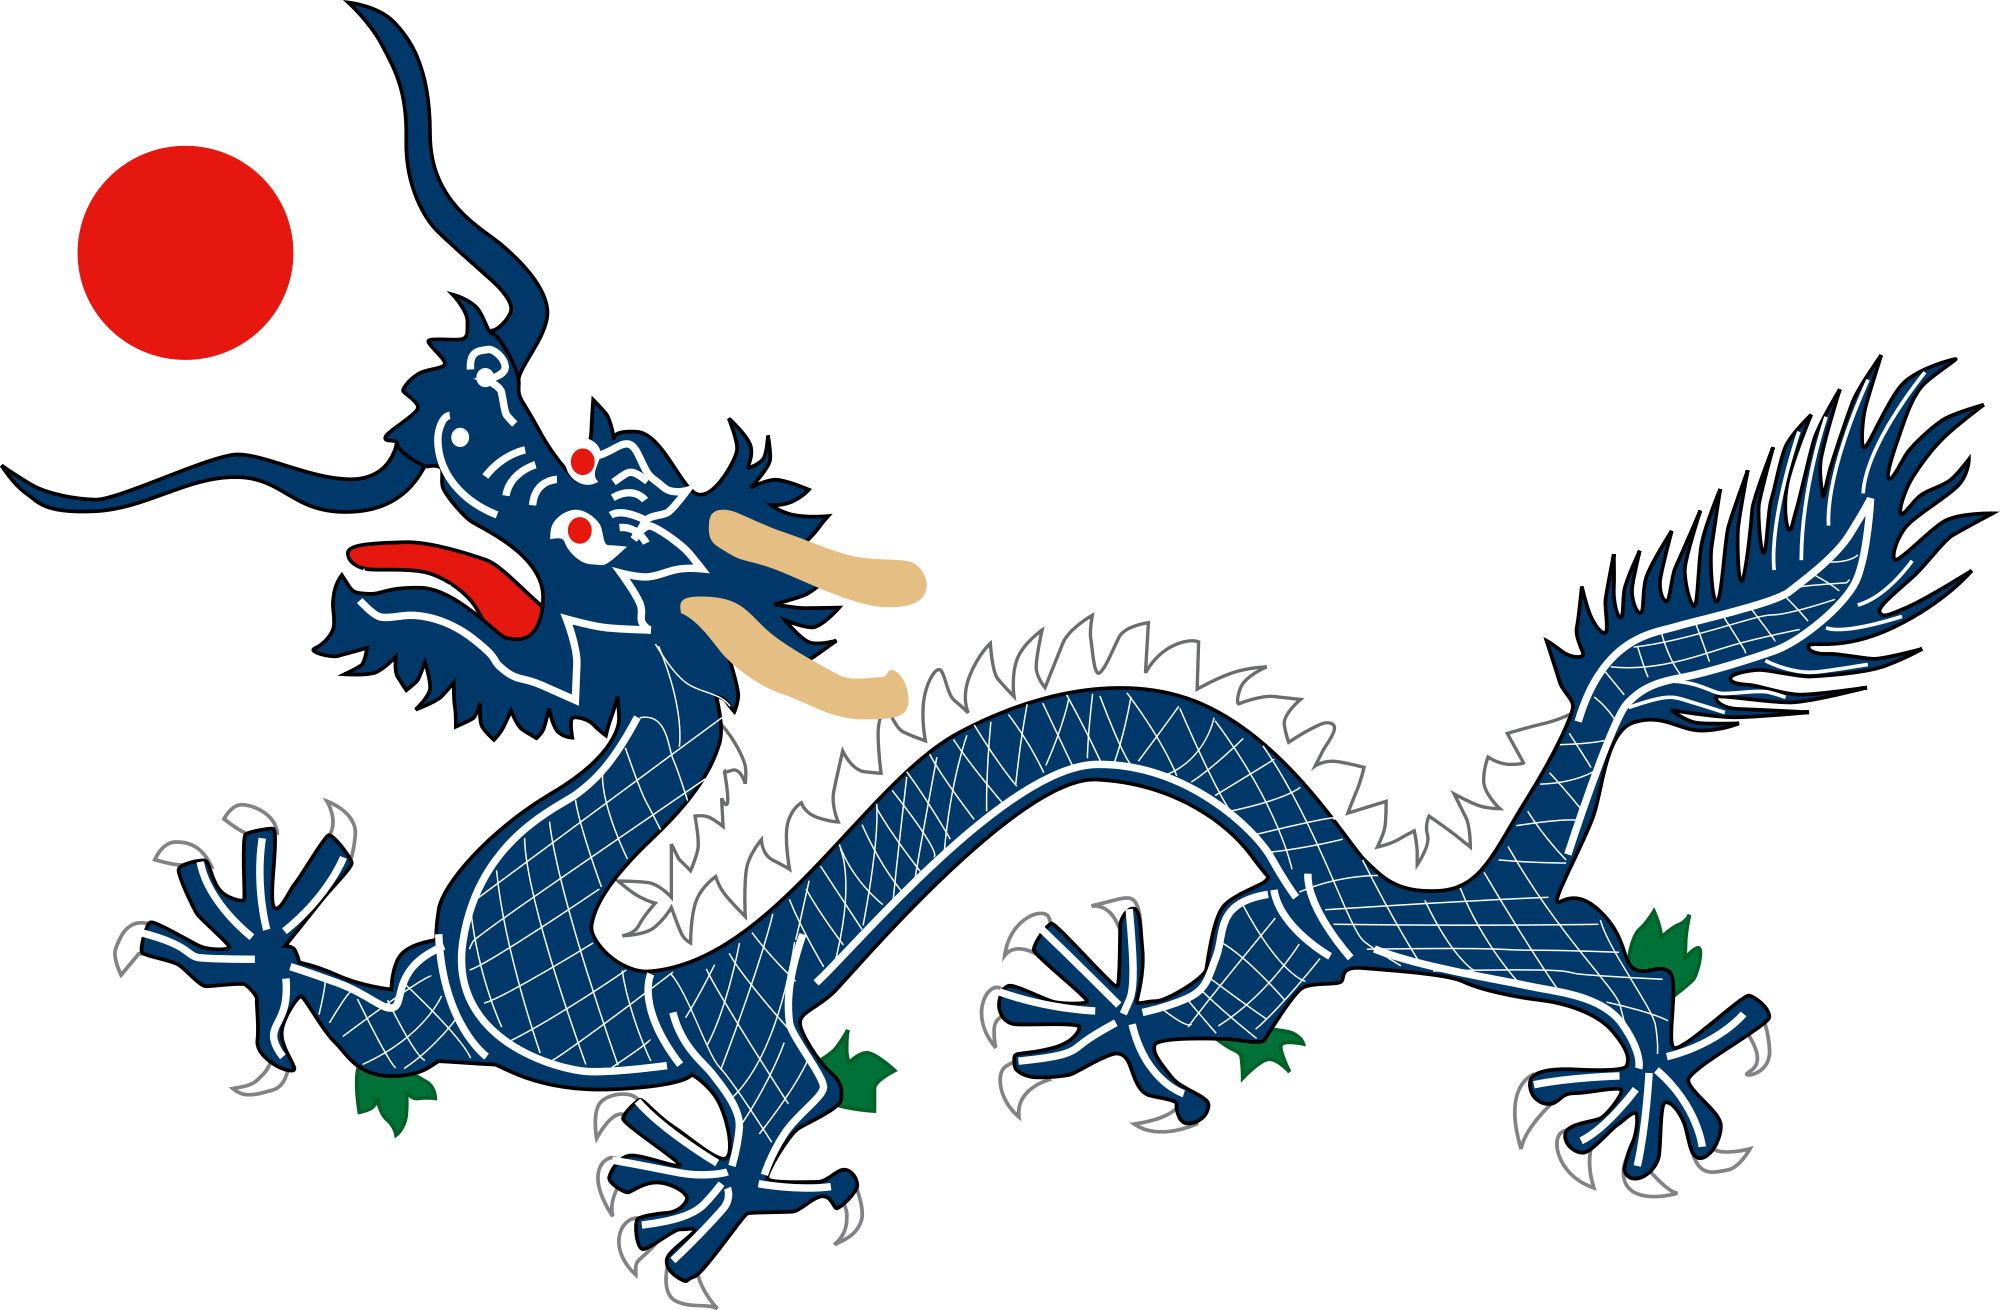 File:Dragon from China Qing Dynasty Flag 1889.svg.